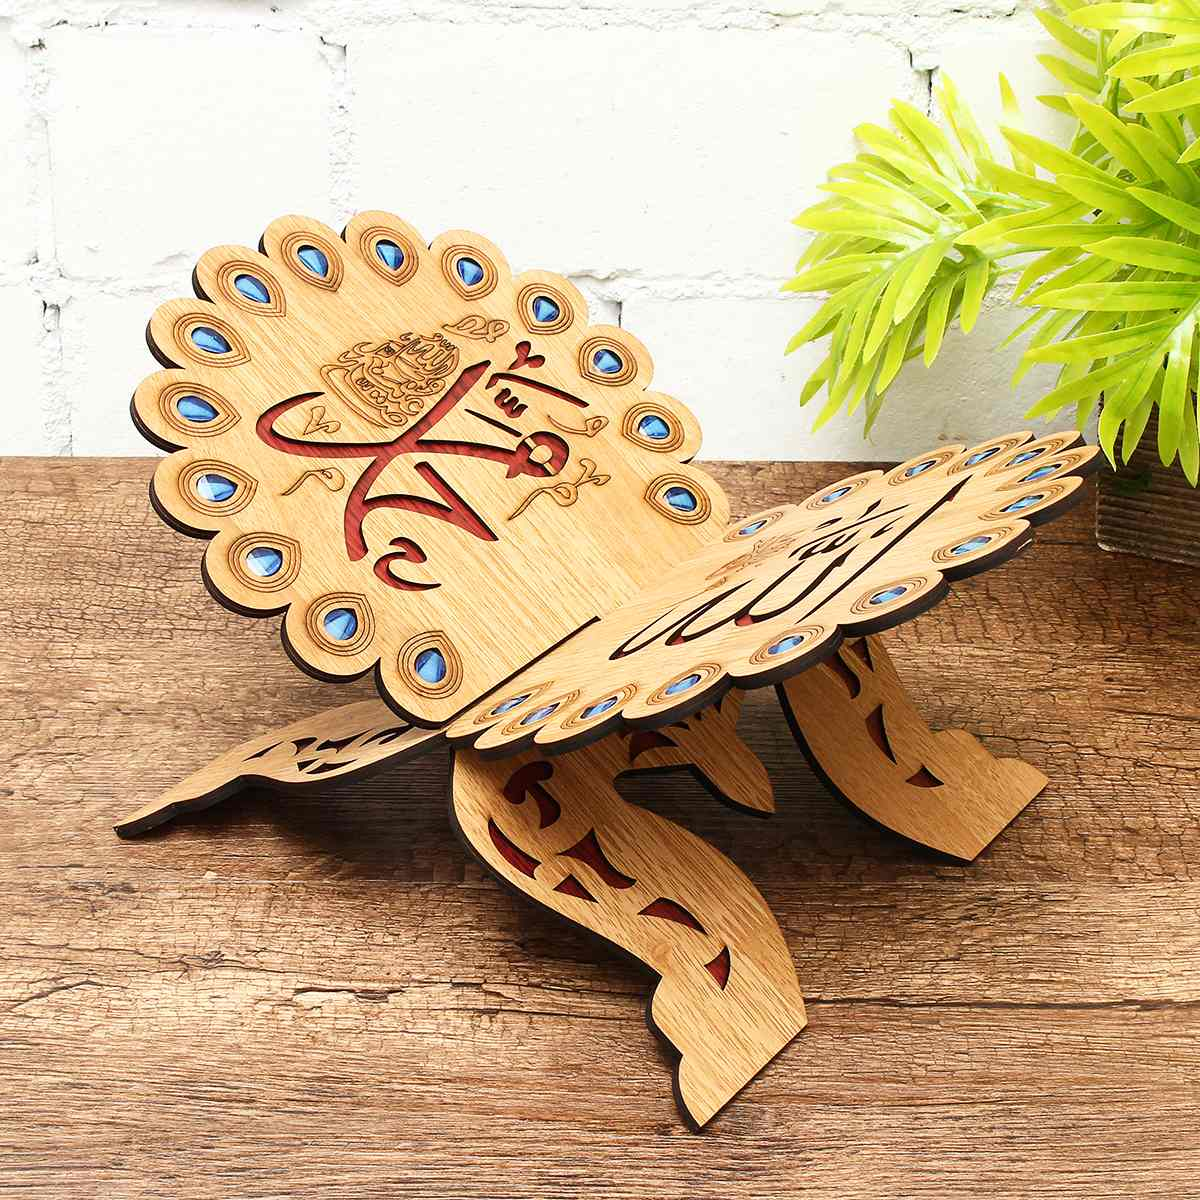 Office & School Supplies 33*23/30*20cm Removable Wooden Book Stand Holder Quran Muslim Ramadan Allah Islamic Gift Handmade Wood Decor Lightweight Sale Price Bookends